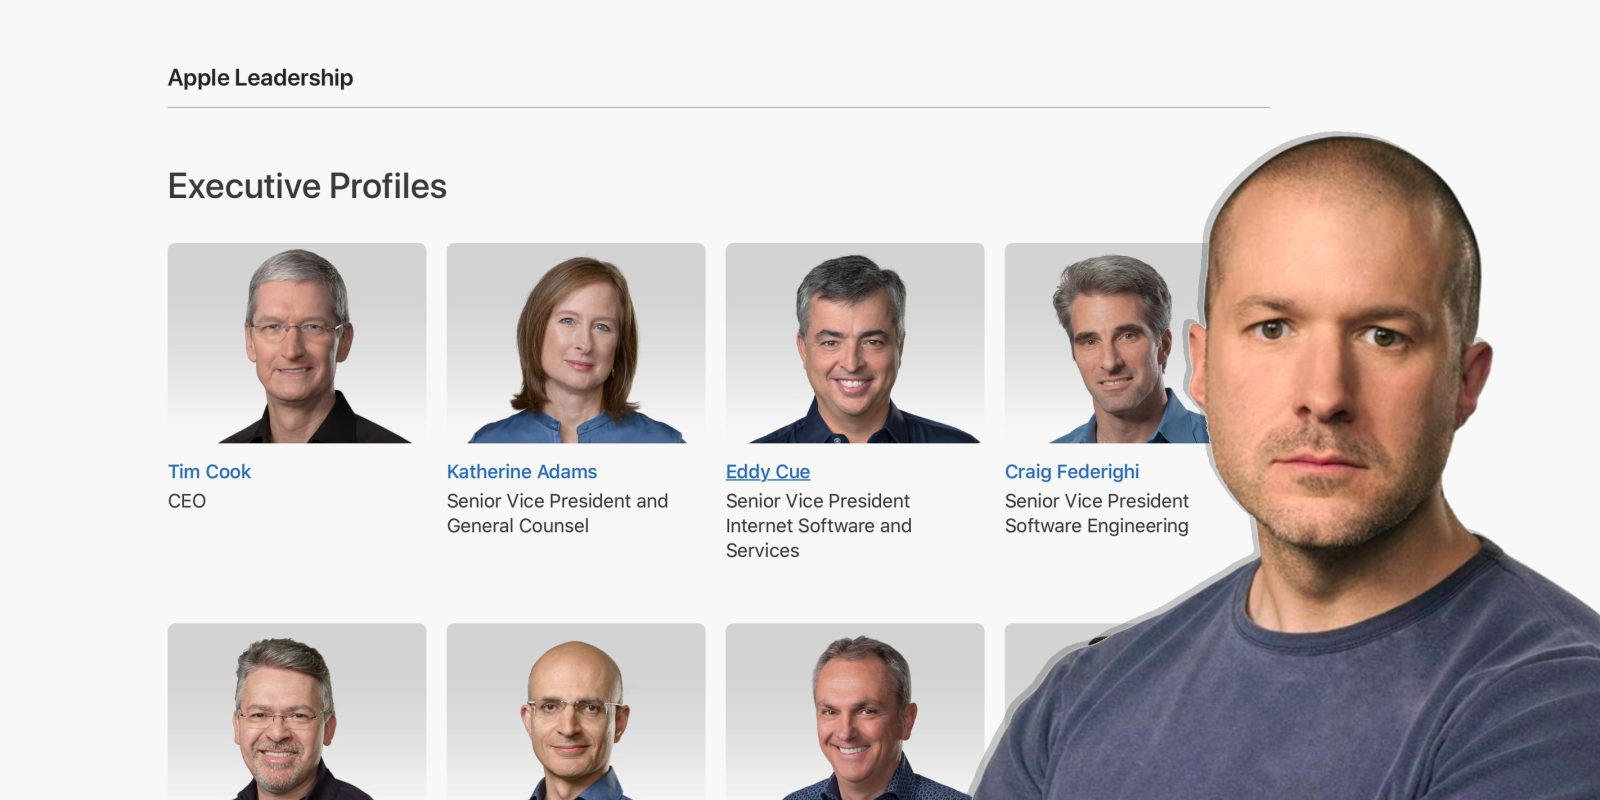 Jony Ive removed from Apple executive leadership page as he officially departs the company